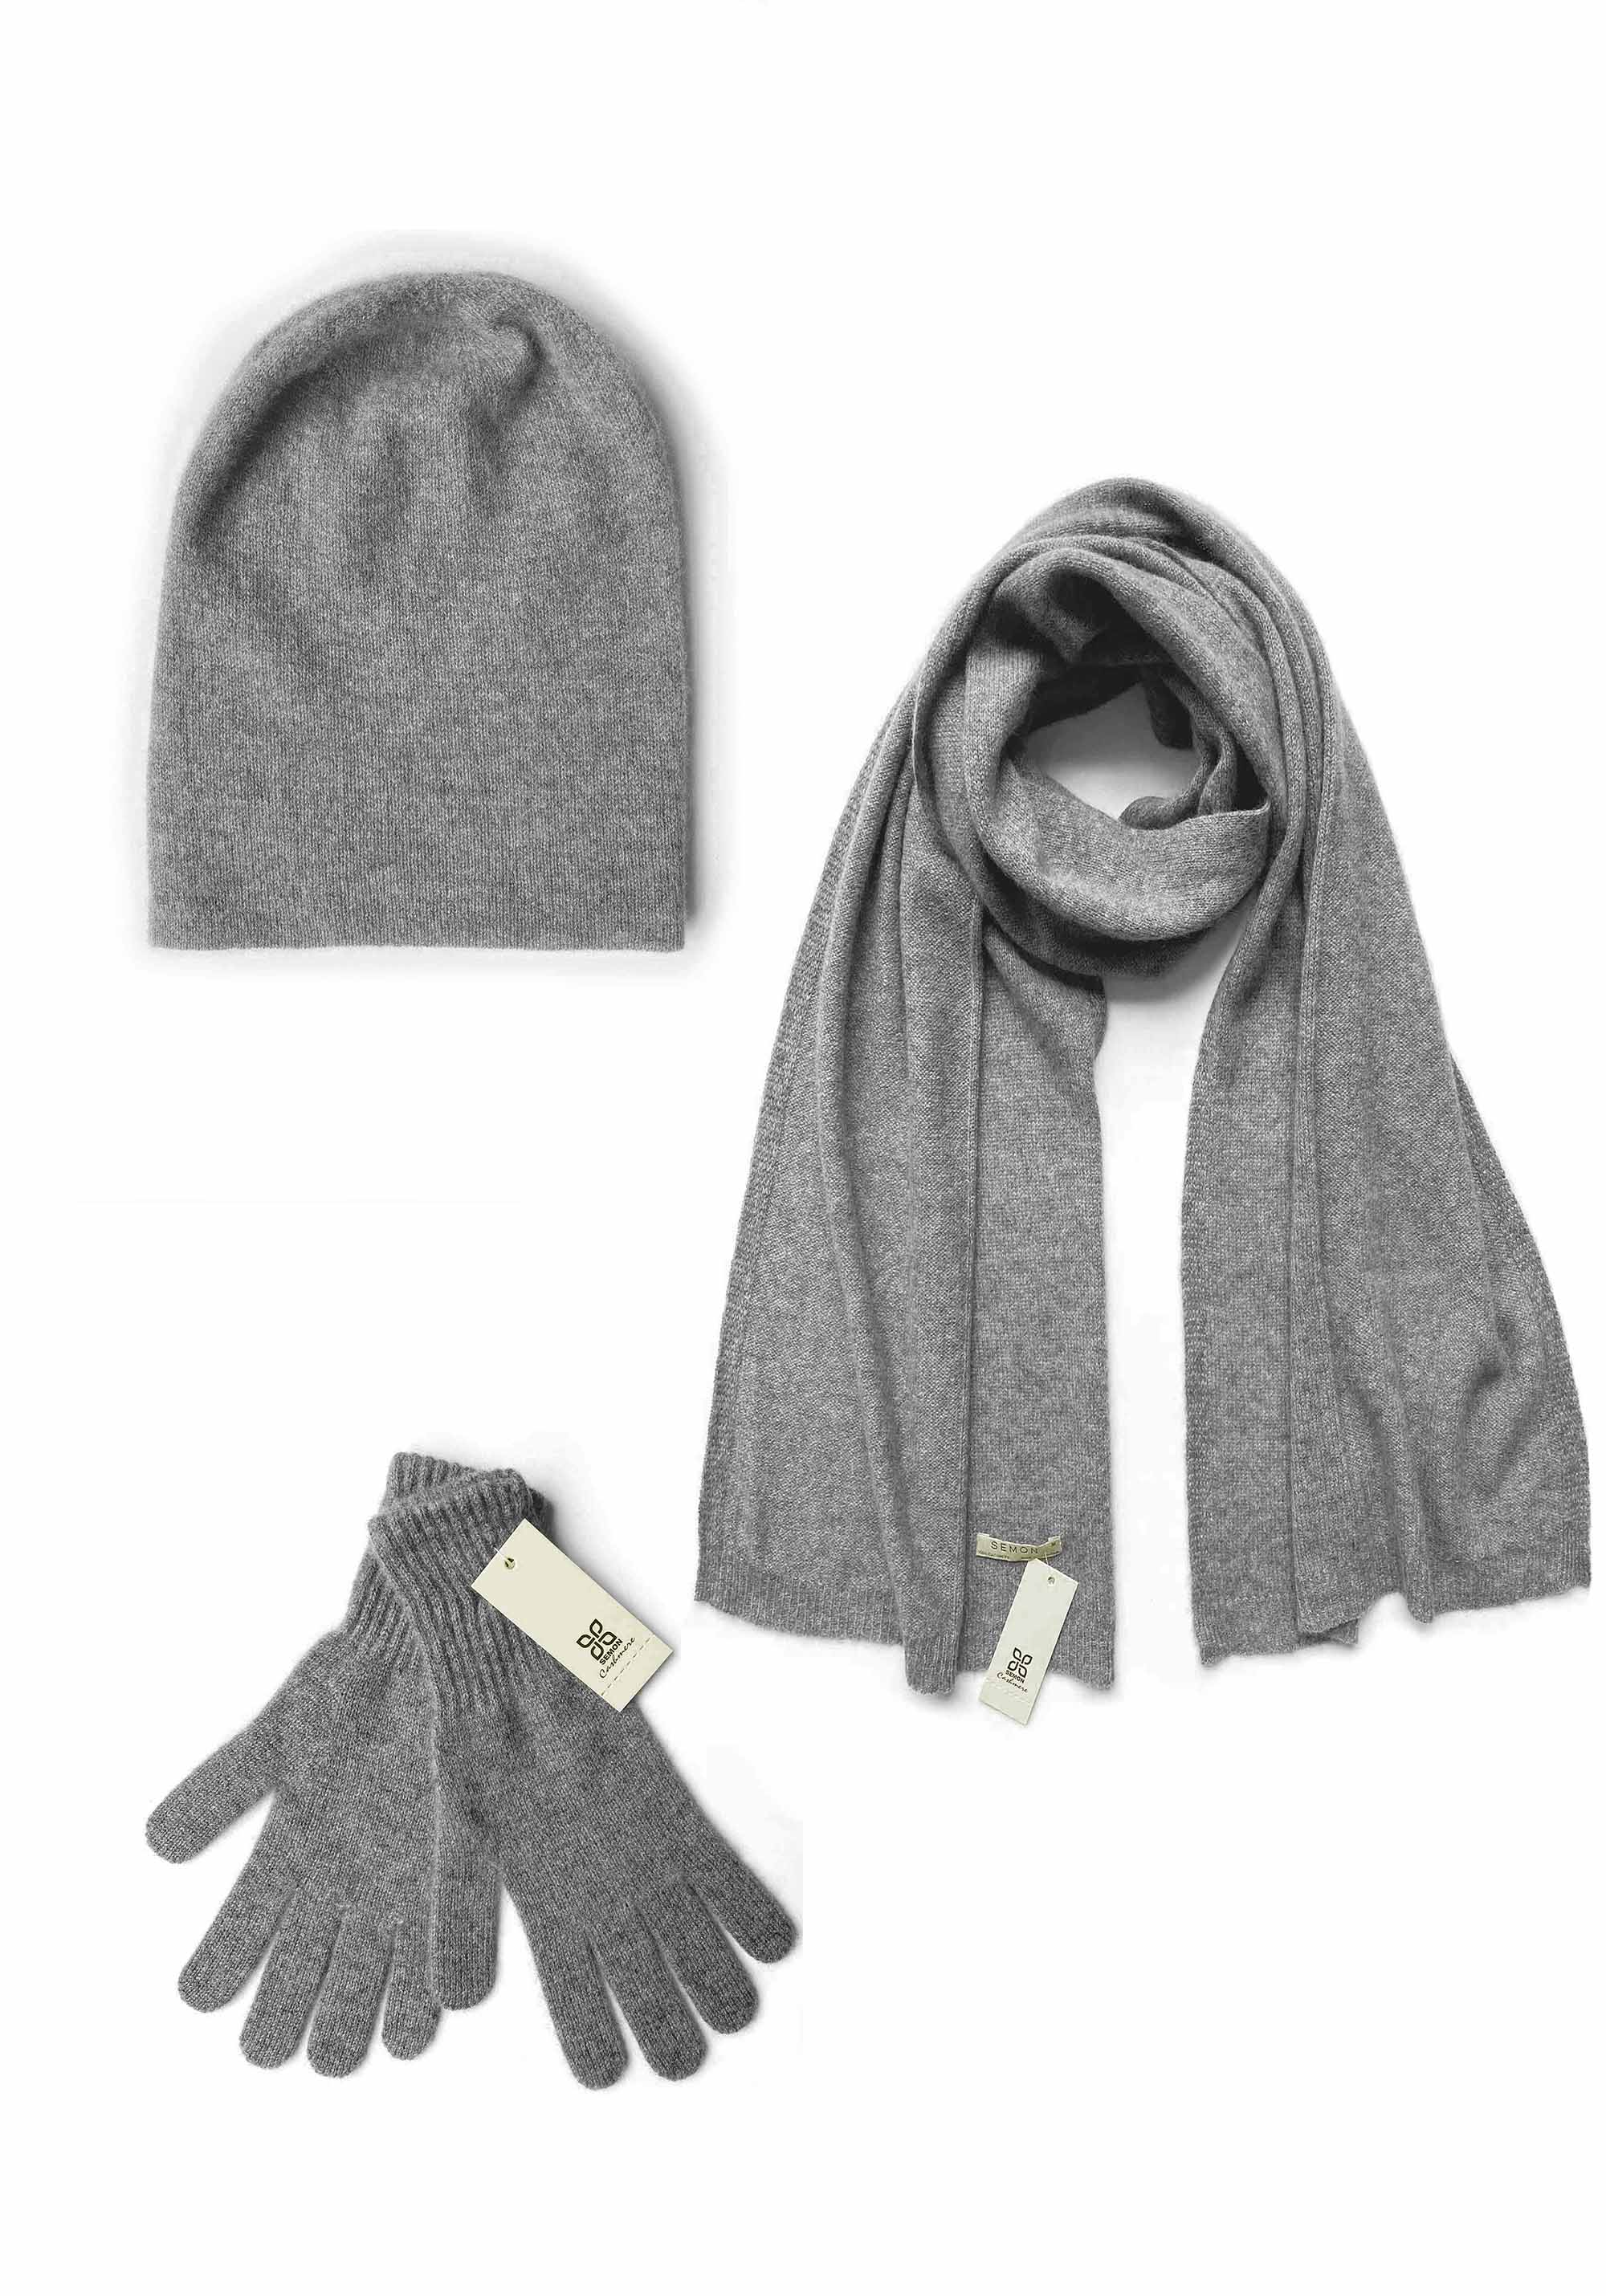 Womens 100% pure cashmere Bundle offer for hat scarf & gloves in mid grey | SEMON Cashmere;